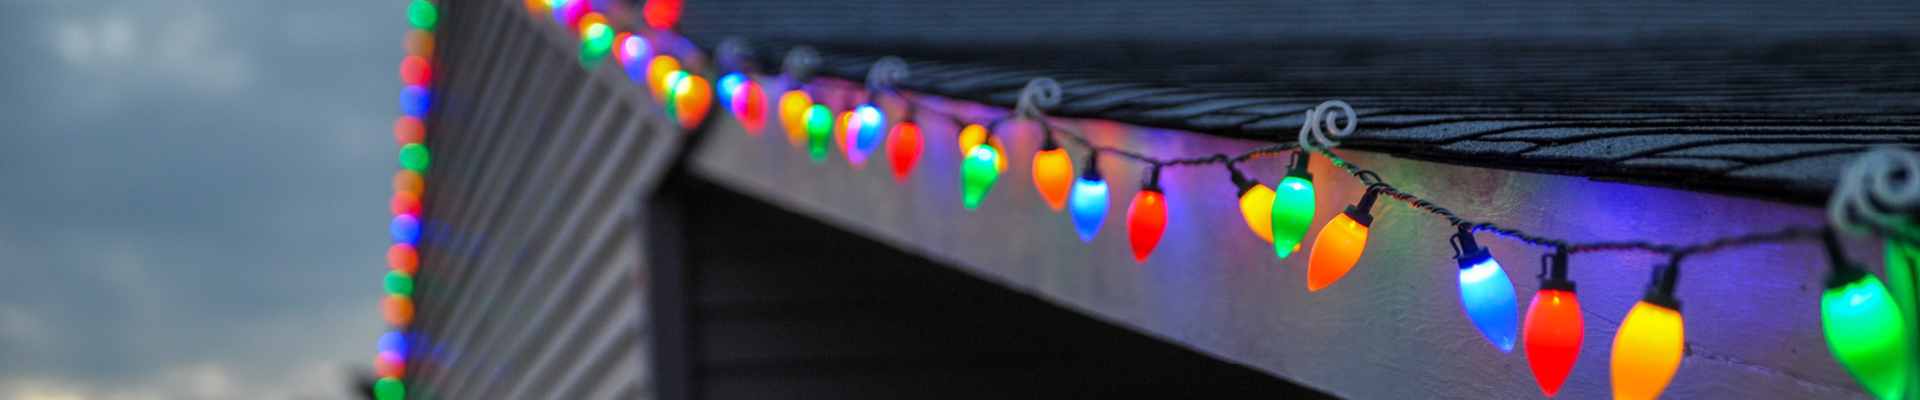 2020-Holiday lighting banner_0.png